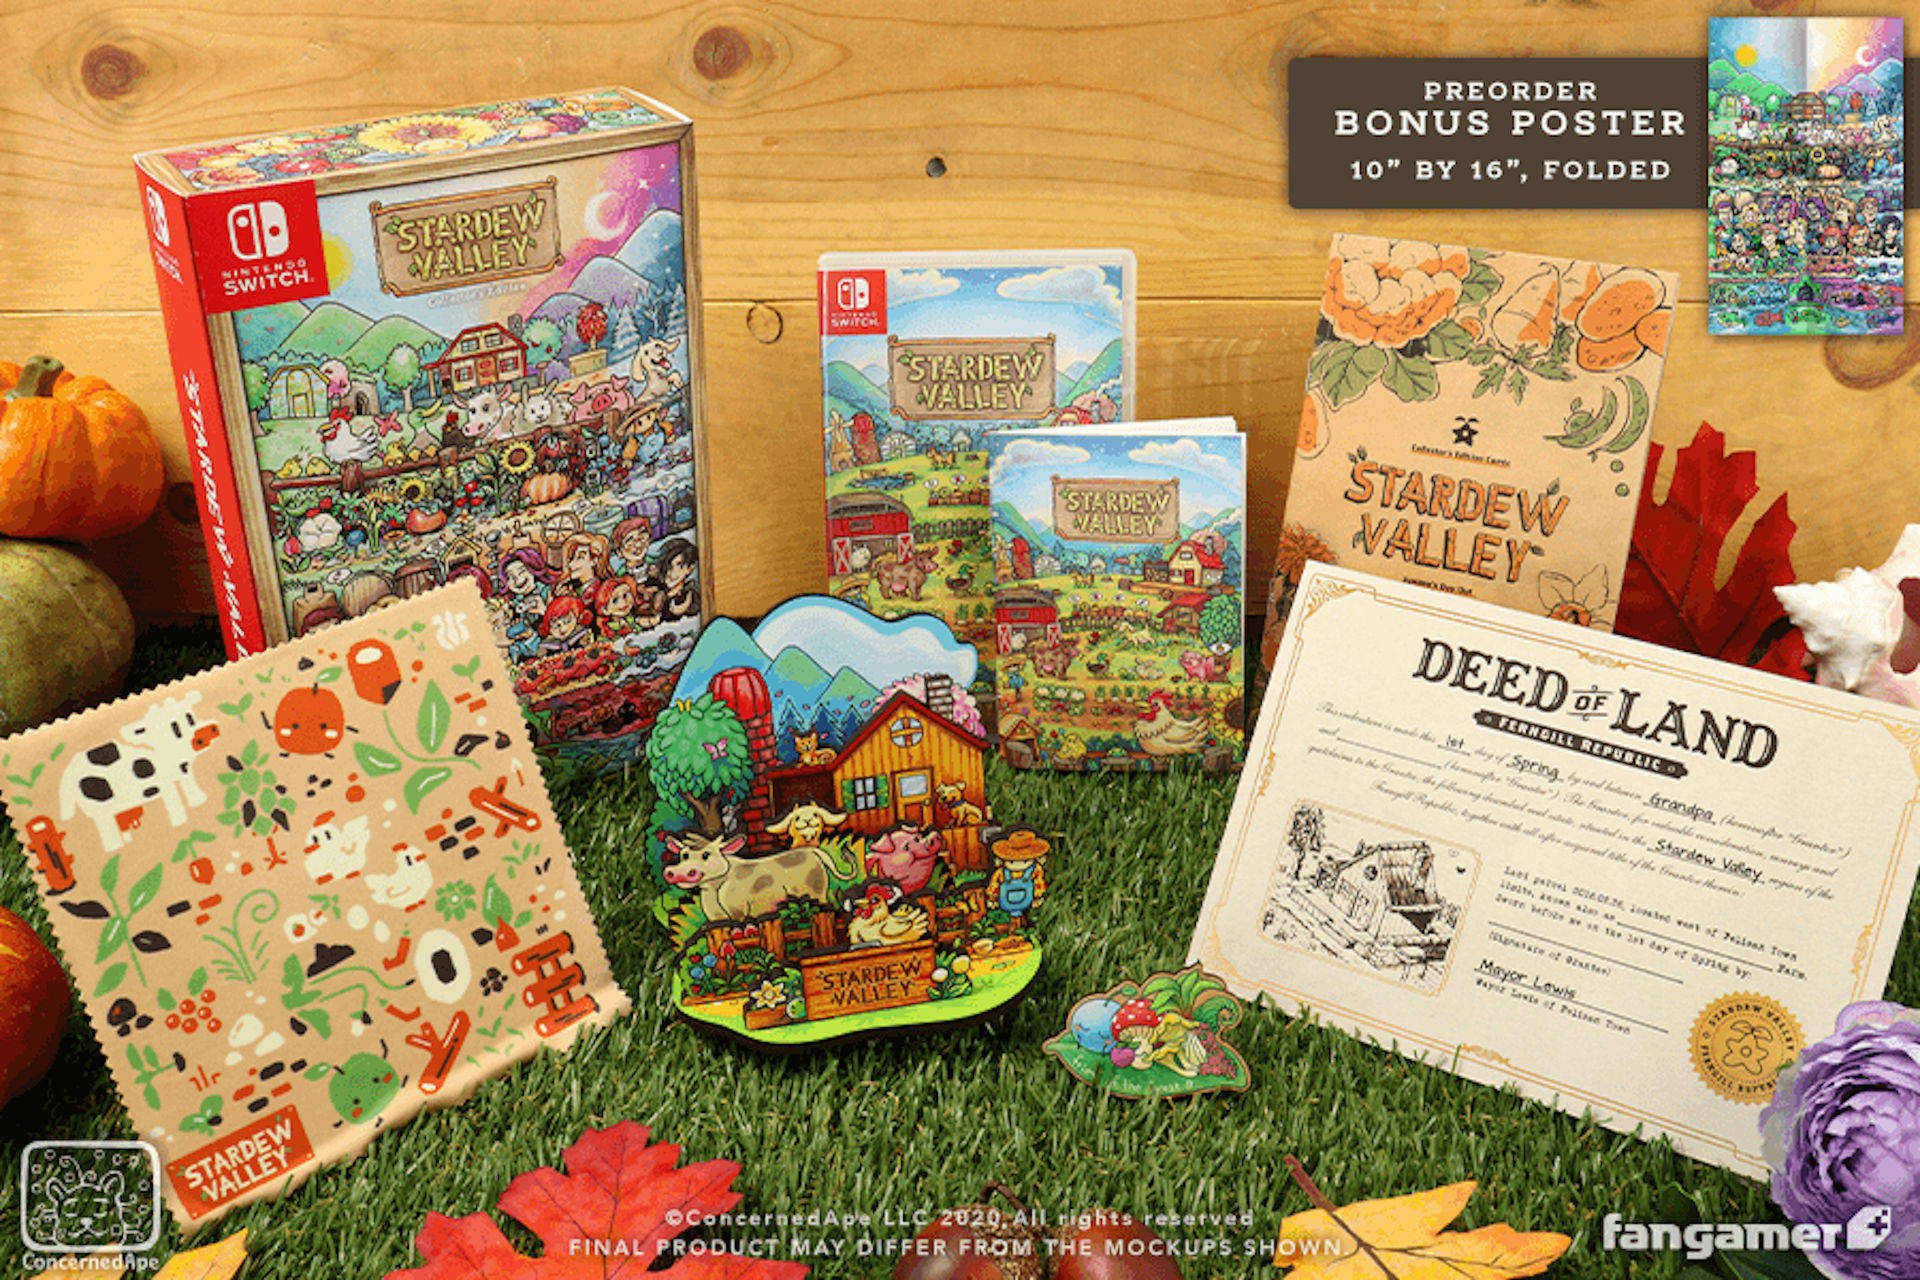 Stardew-Valley-Collectors-Edition-1a.jpg